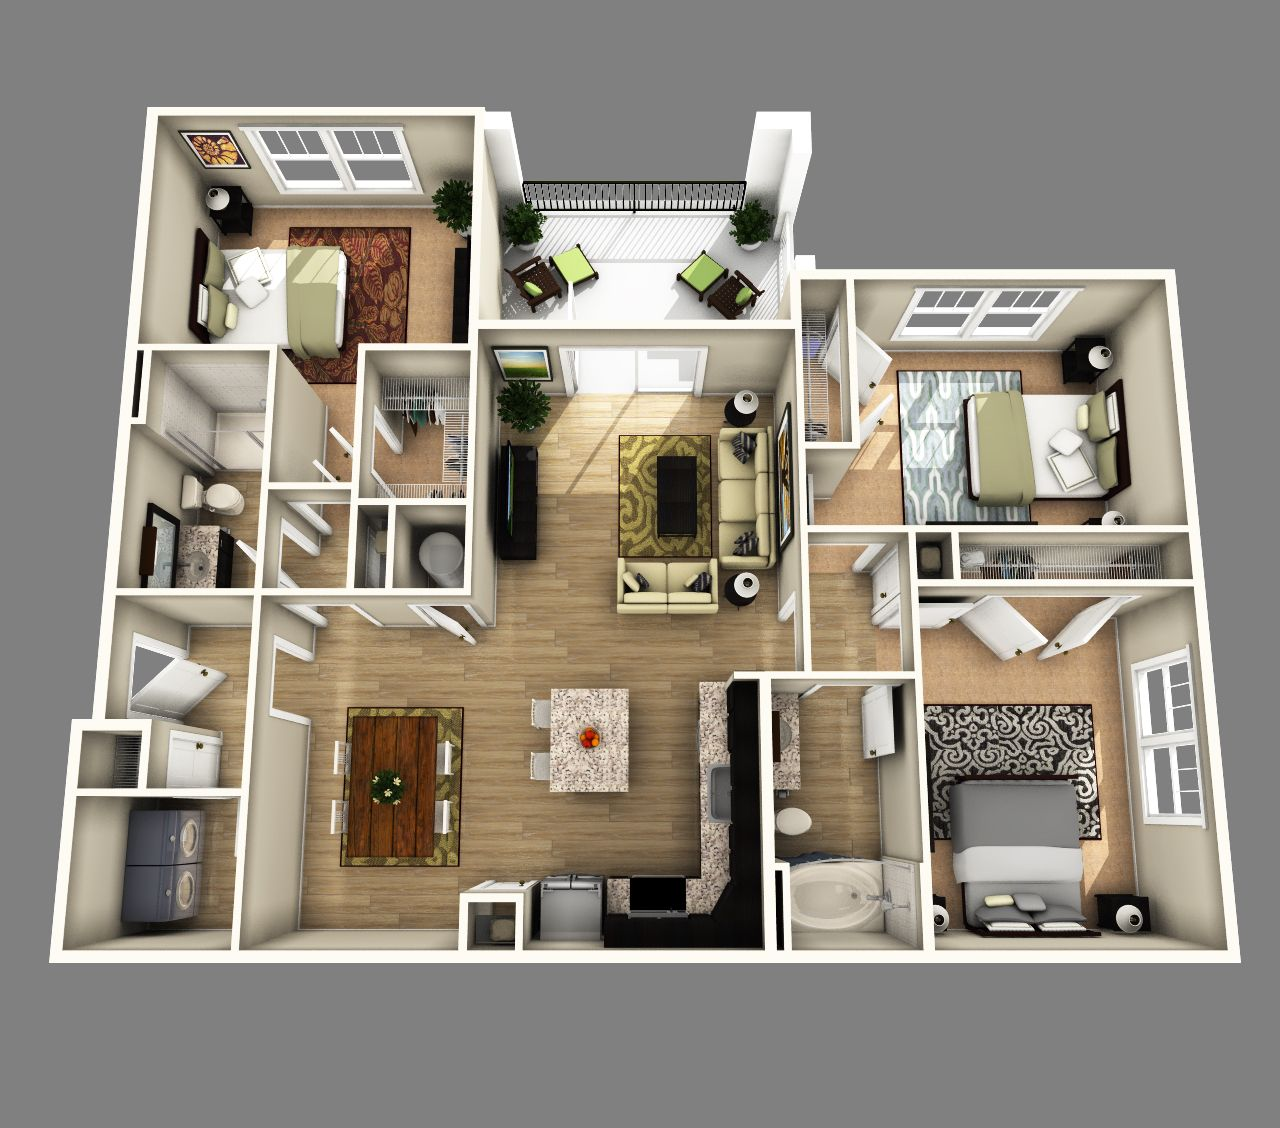 3D open floor plan 3 bedroom 2 bathroom - Google Search | Homes ...